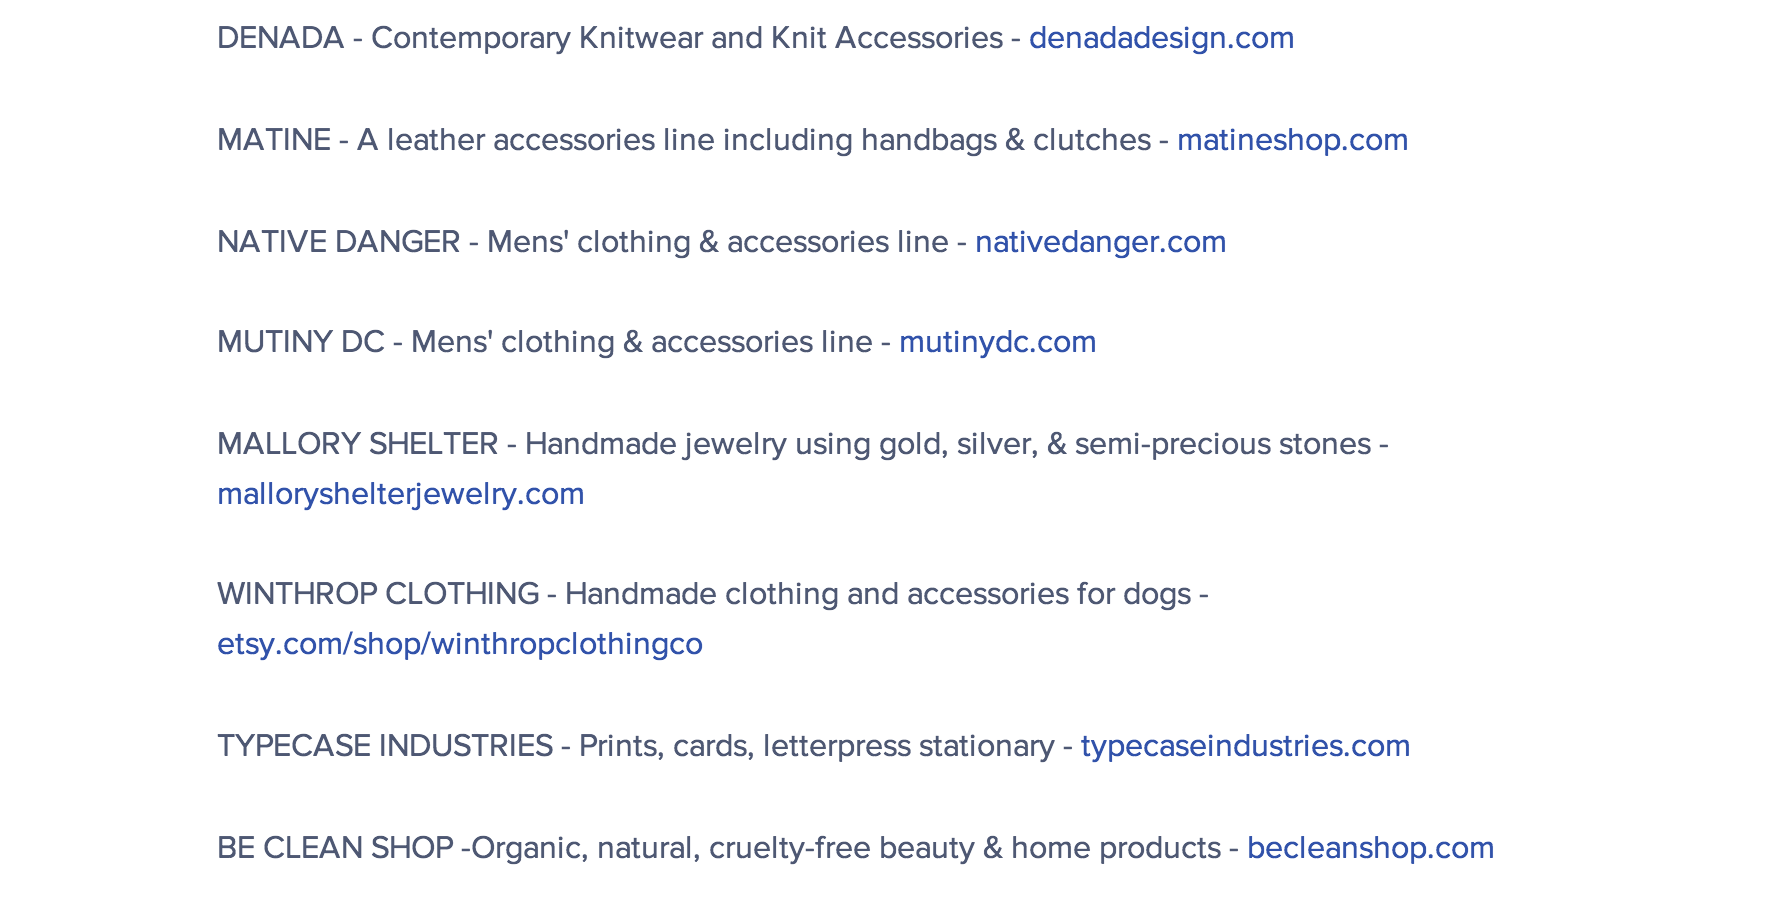 Clickimage for full list of vendors showing at Parcel.